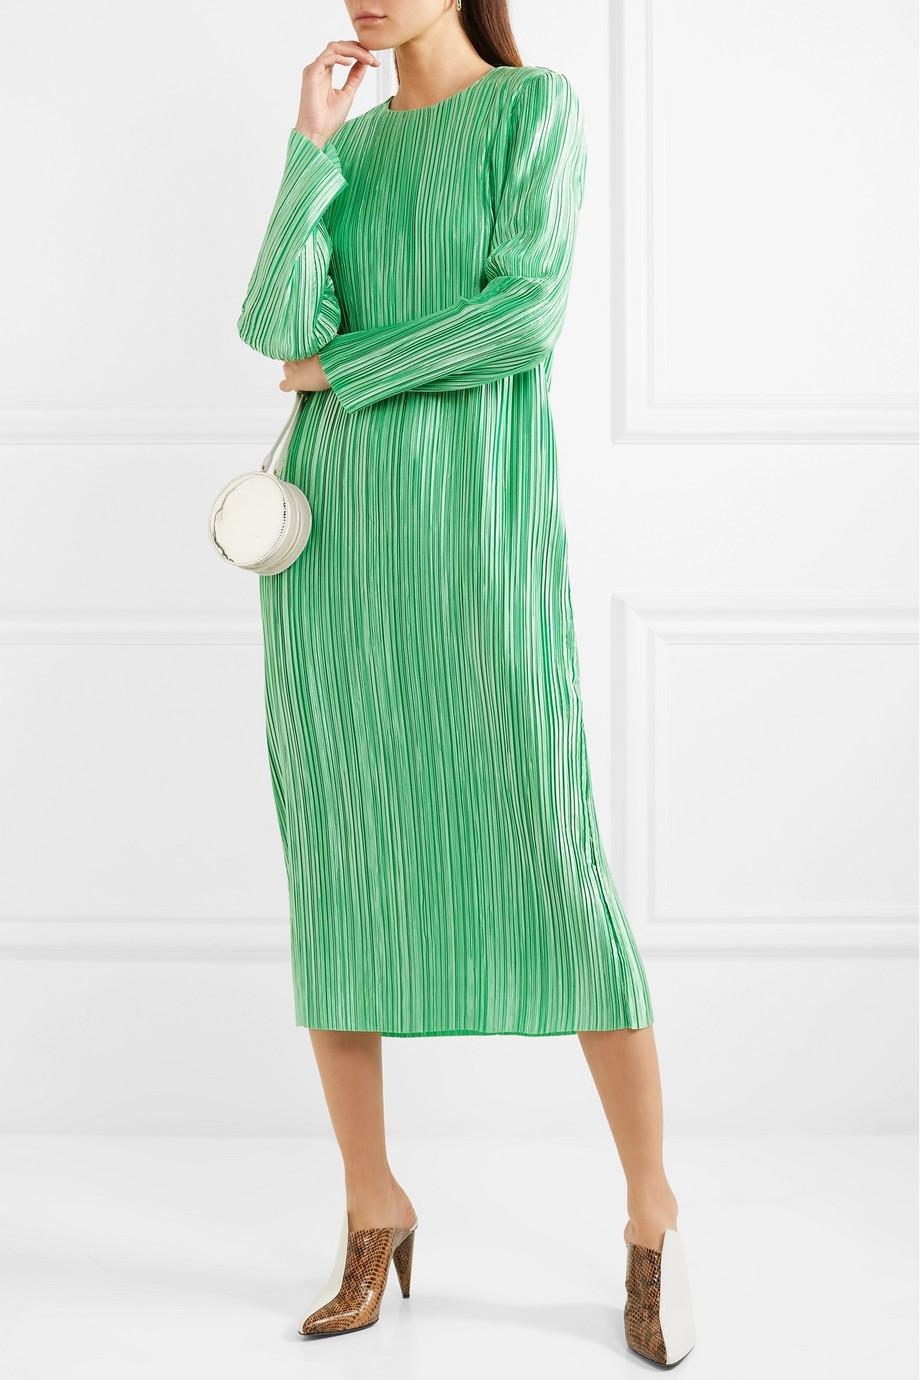 Clearance High Quality Pleated Satin Midi Dress - Green Tibi Cheap Sale Websites wTePxkjQd